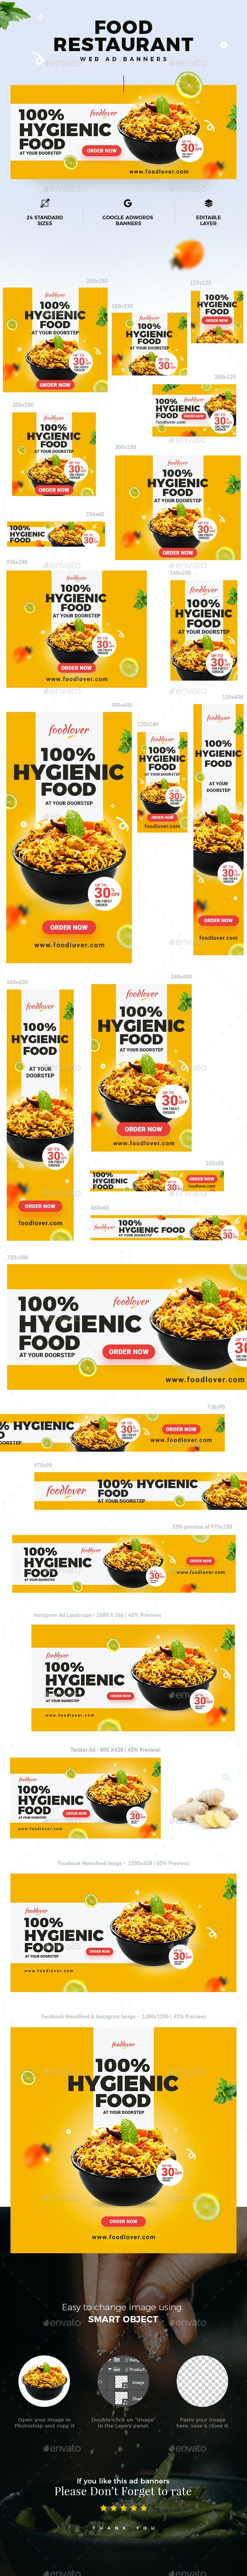 Food & Restaurant Web Ad Banners - Banners & Ads Web Elements